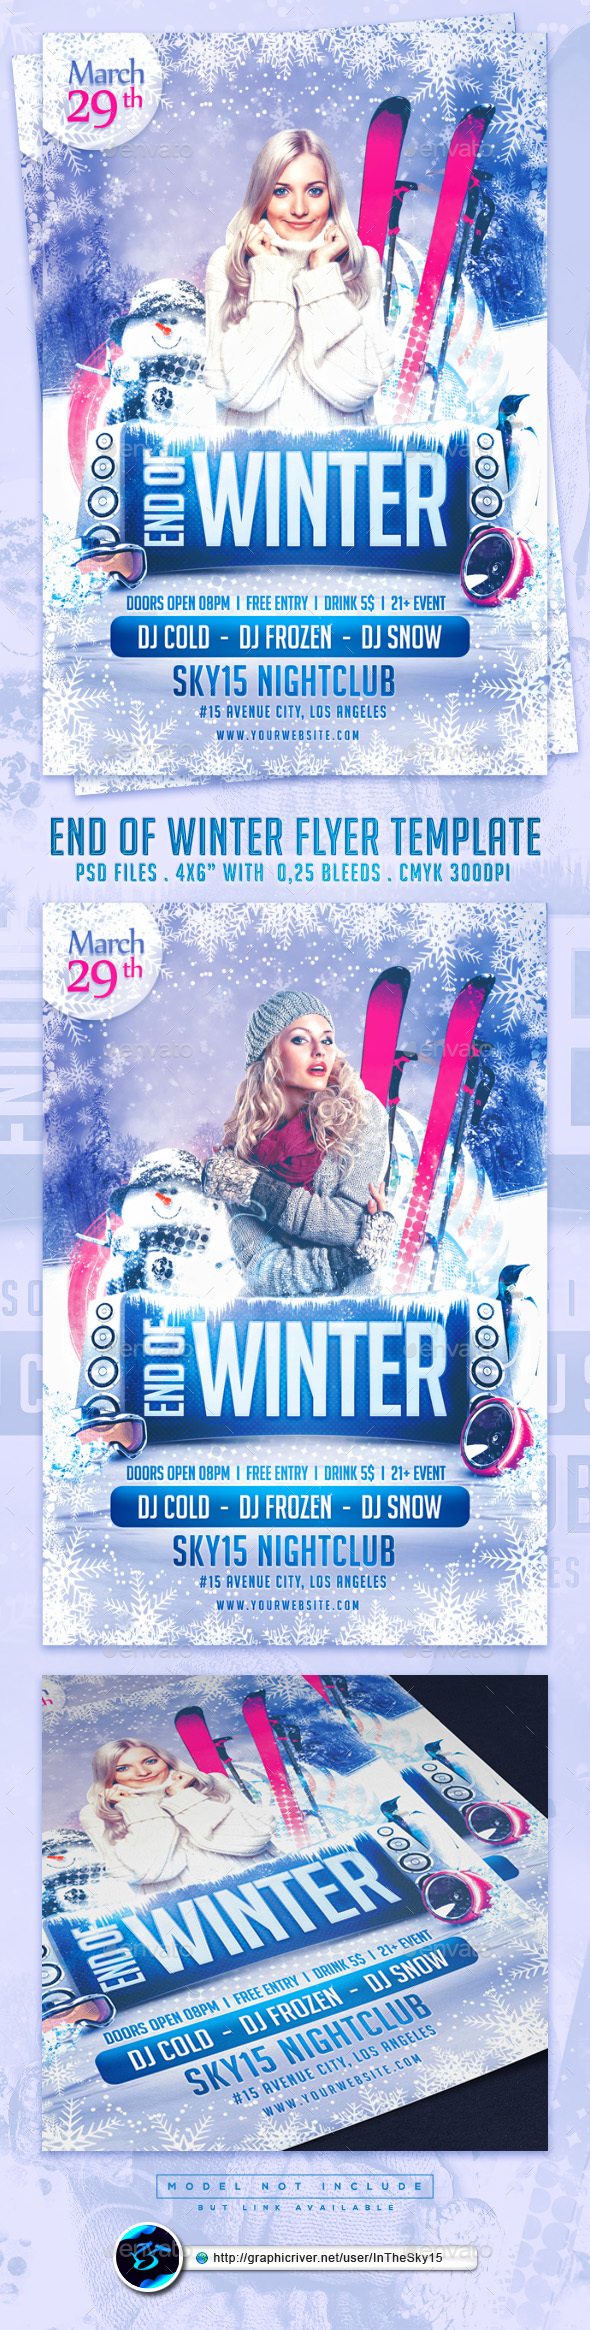 End of Winter Flyer Template - Flyers Print Templates